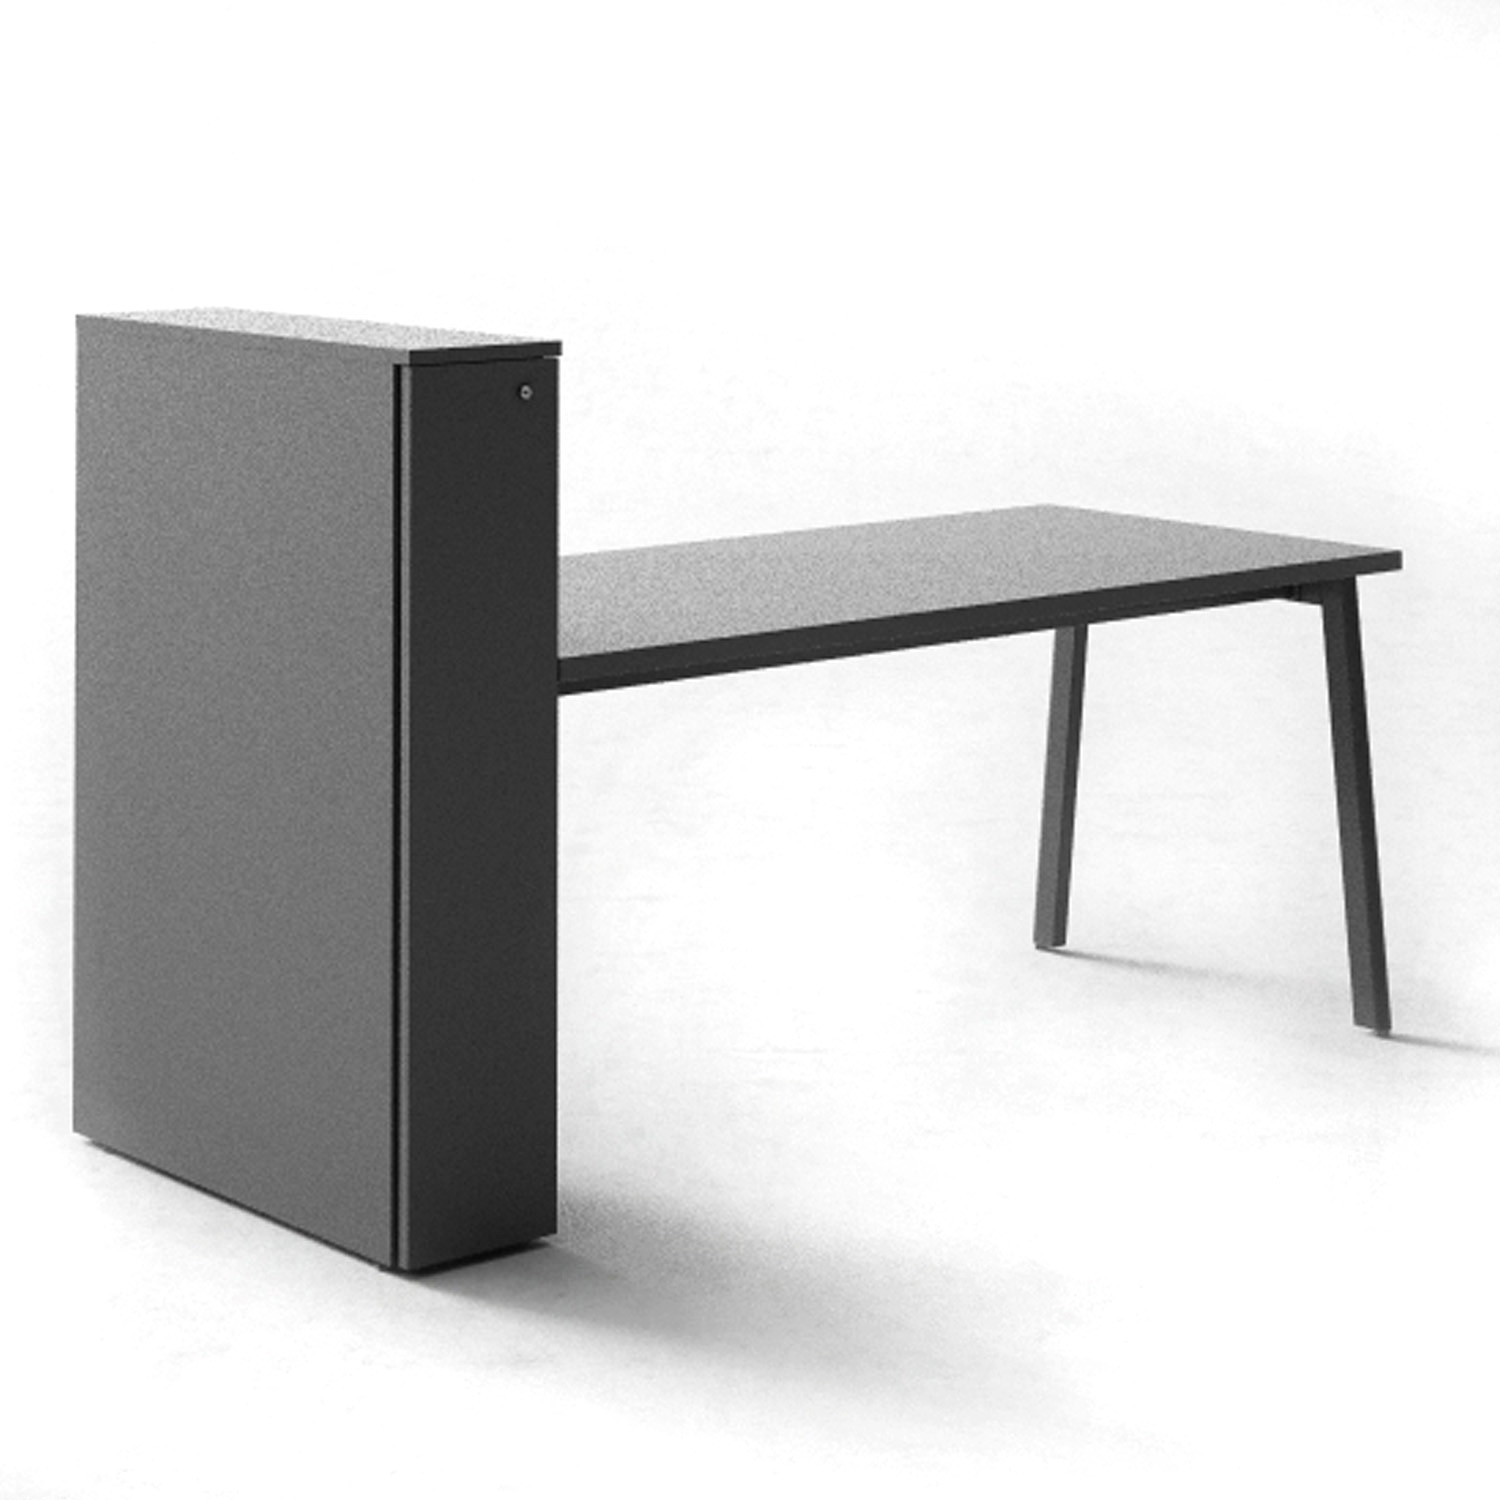 M10 Office Desks